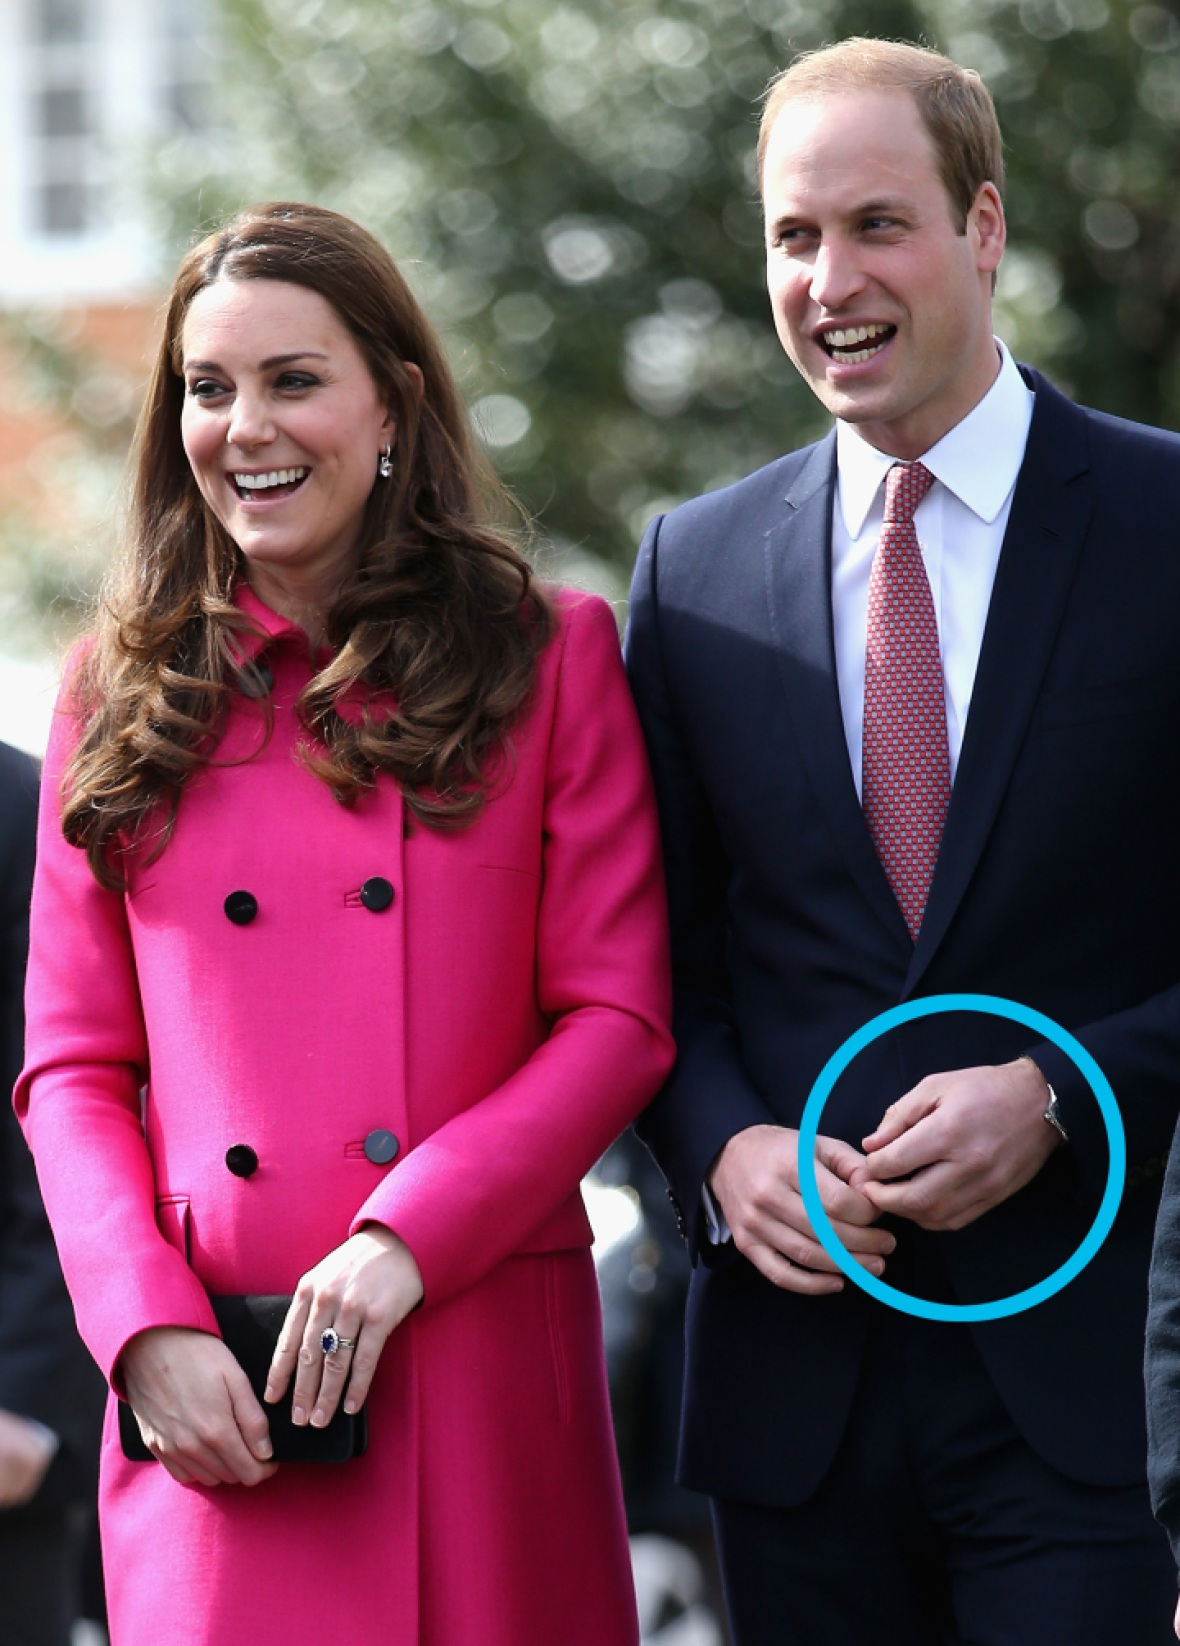 prince william wedding ring getty images